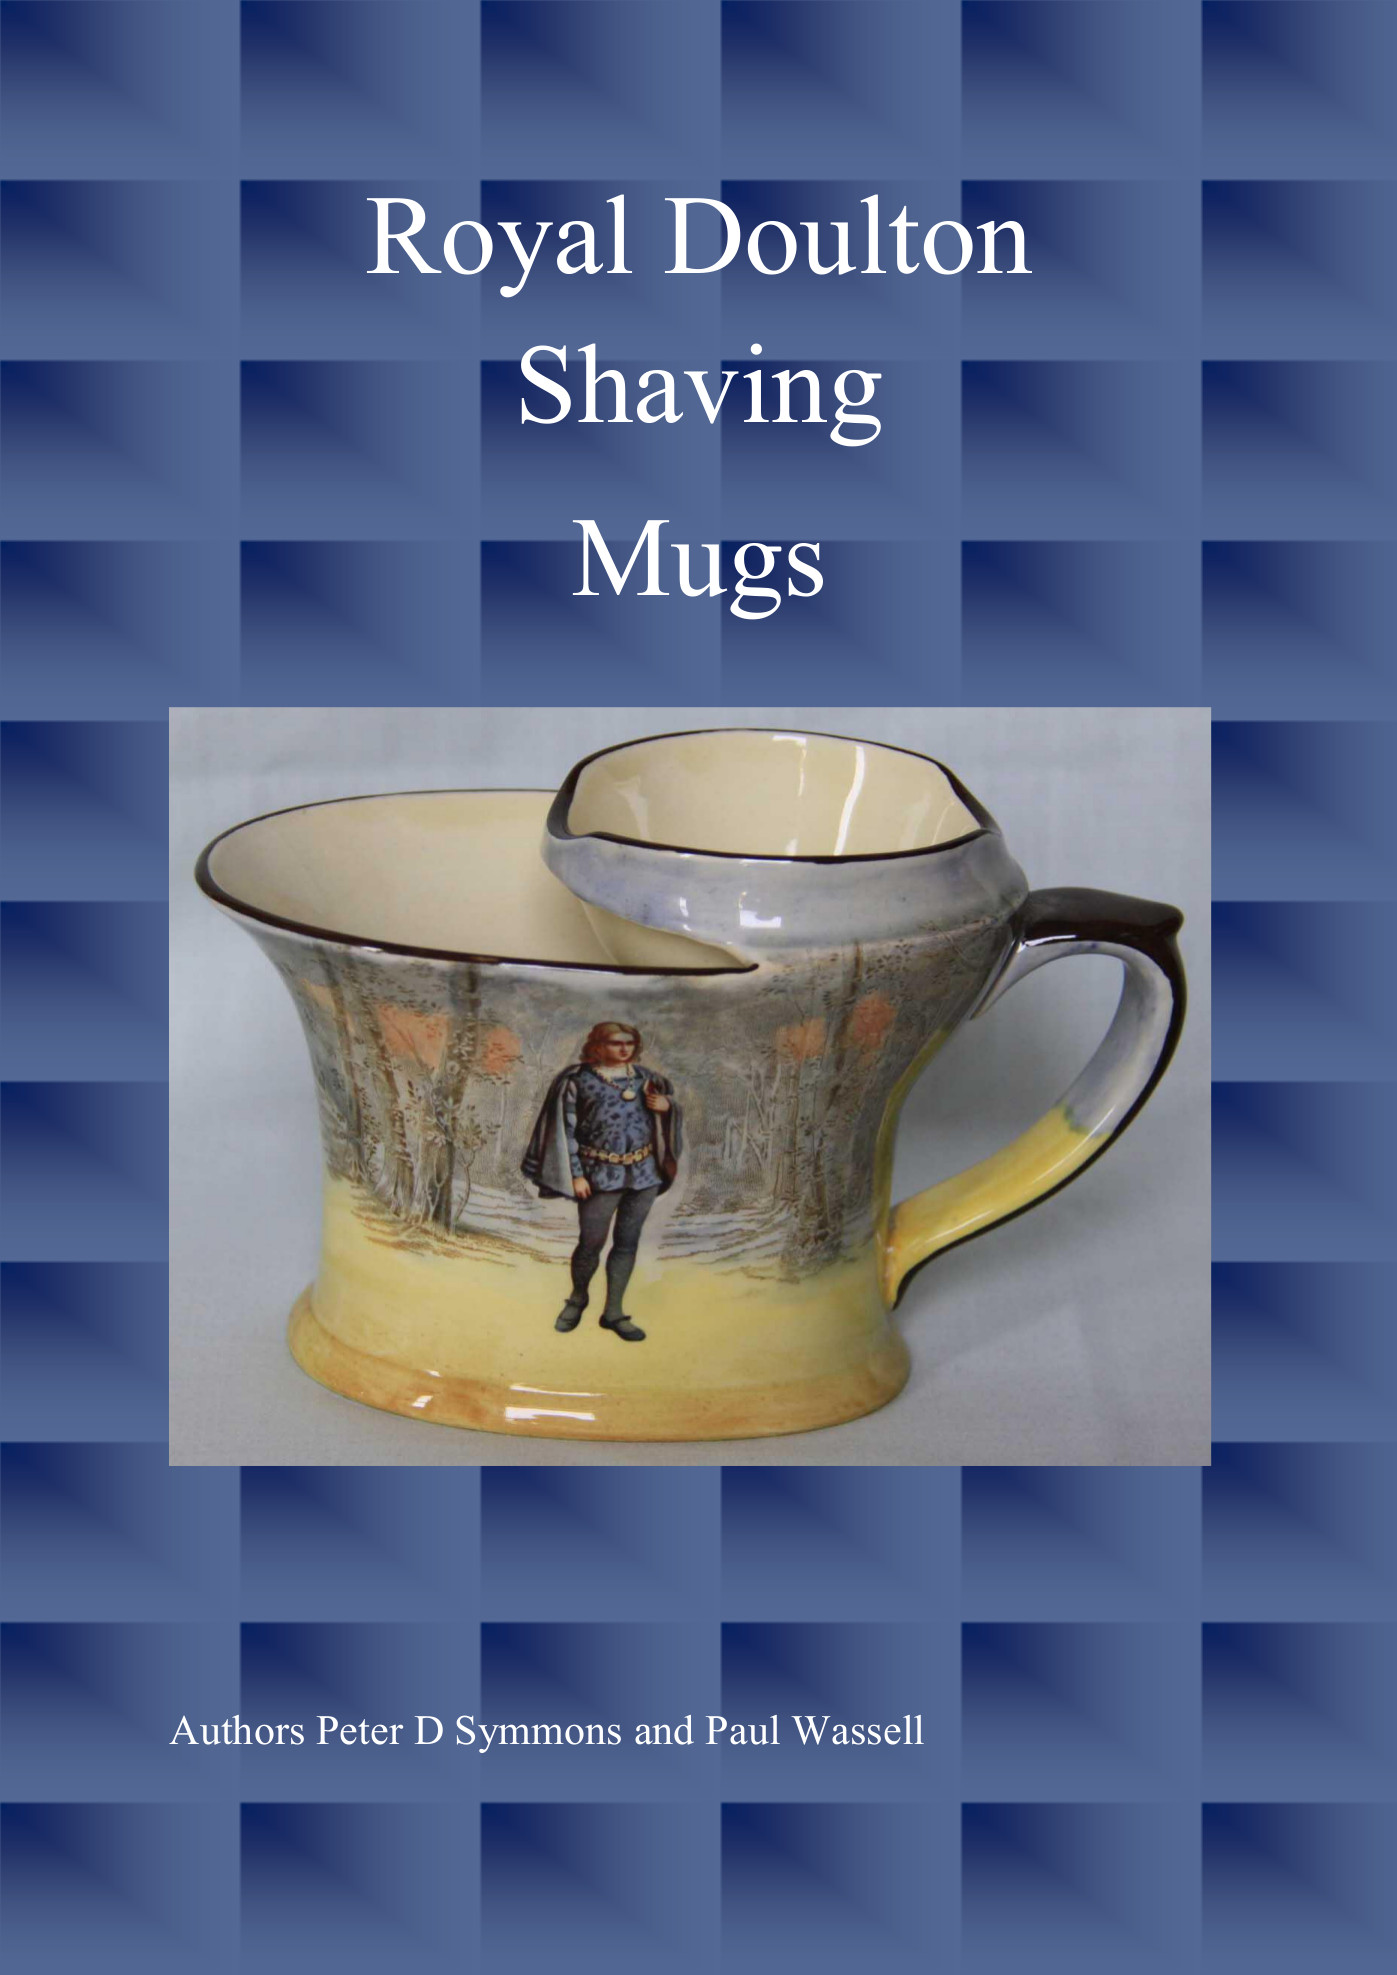 Royal Doulton Shaving Mugs